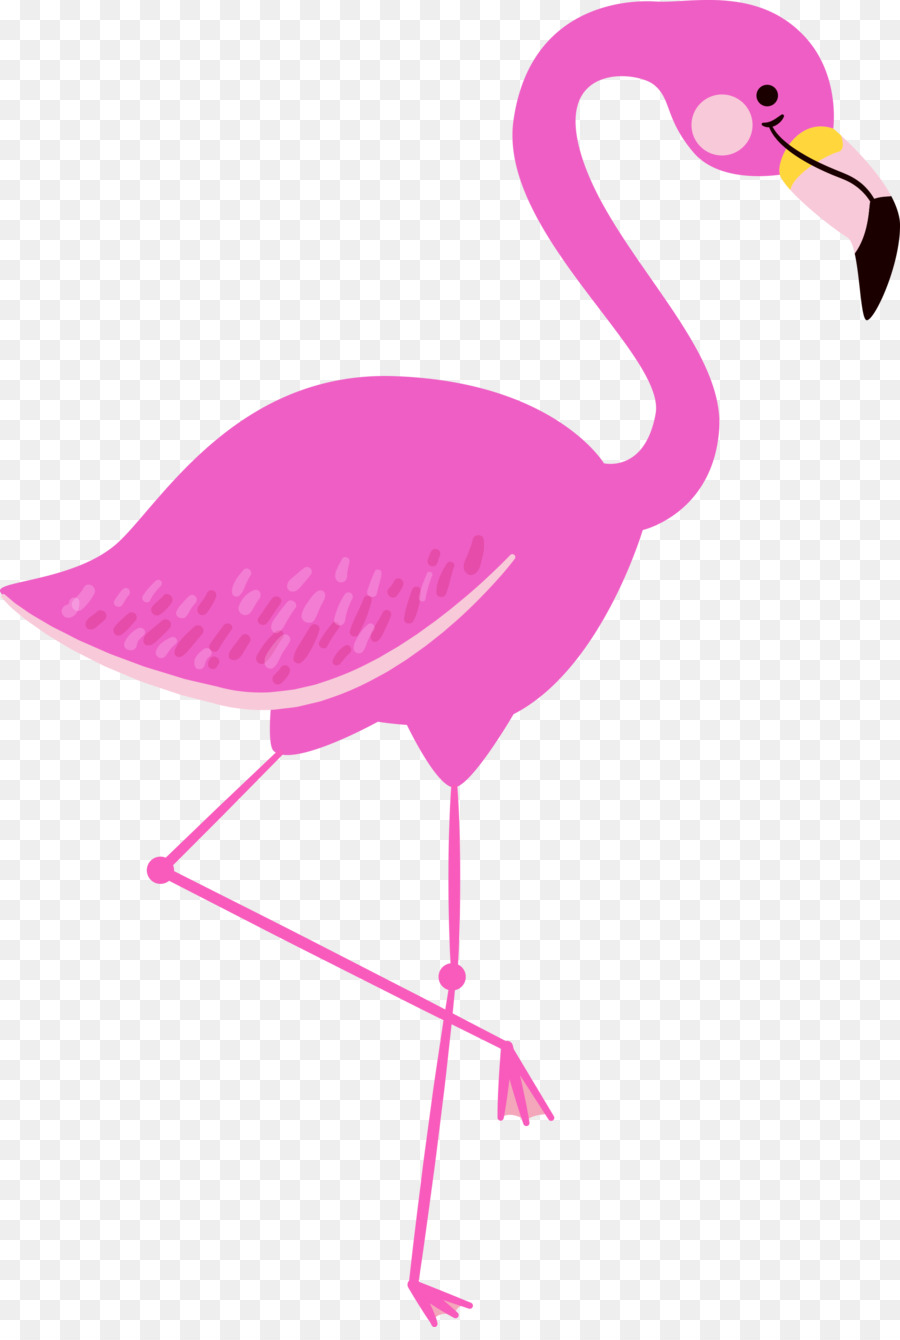 Flamingo Clip Art Flamingo Png Download 2360 3480